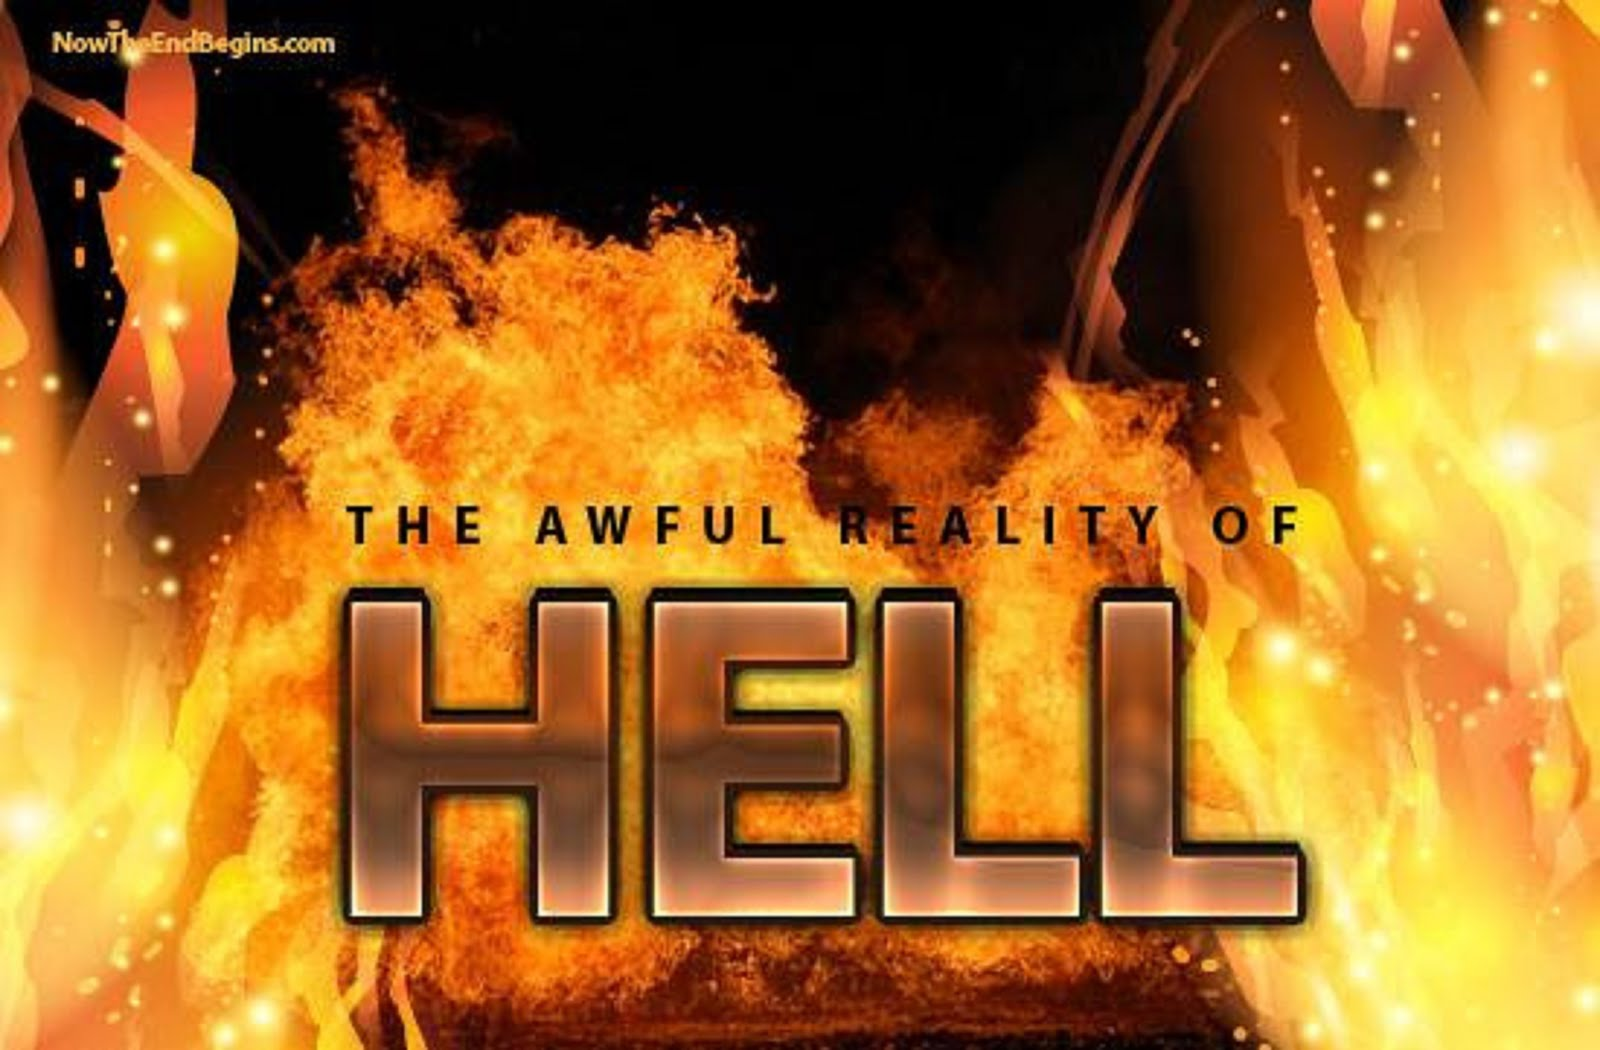 THE AWFUL REALITY OF HELL